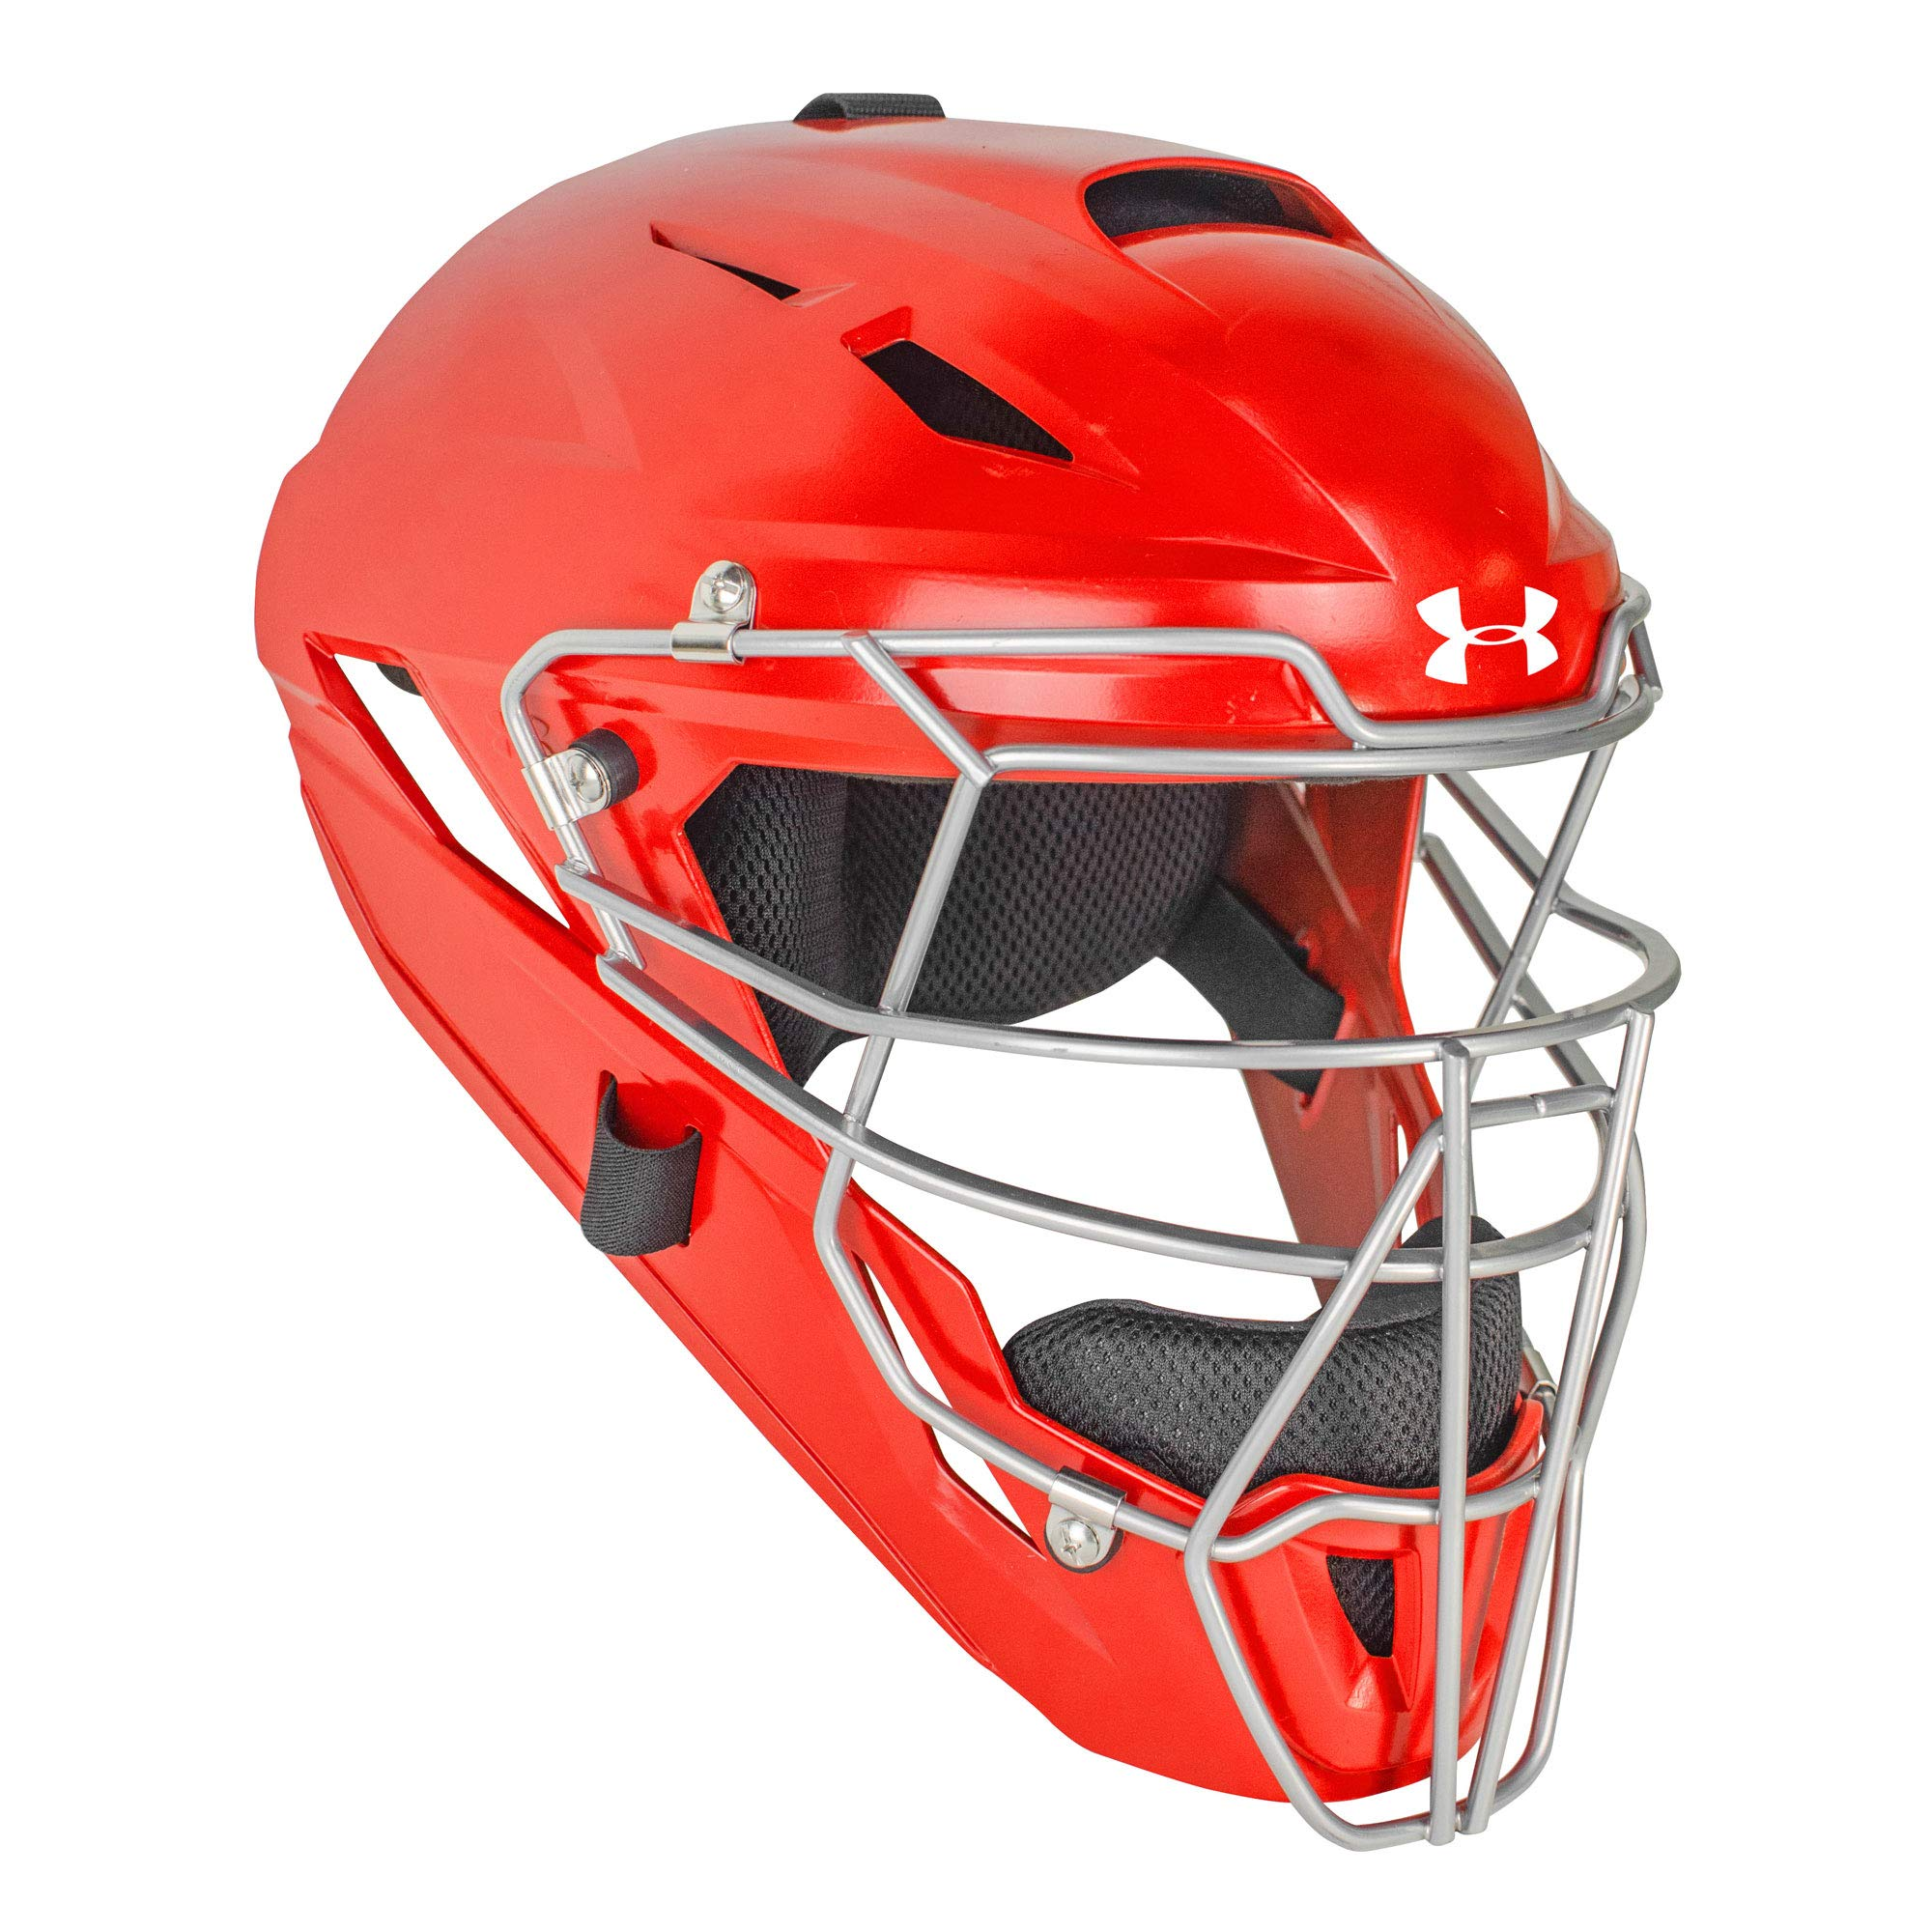 Under Armour Converge Solid Adult Baseball/Softball Catcher's Helmet by Under Armour